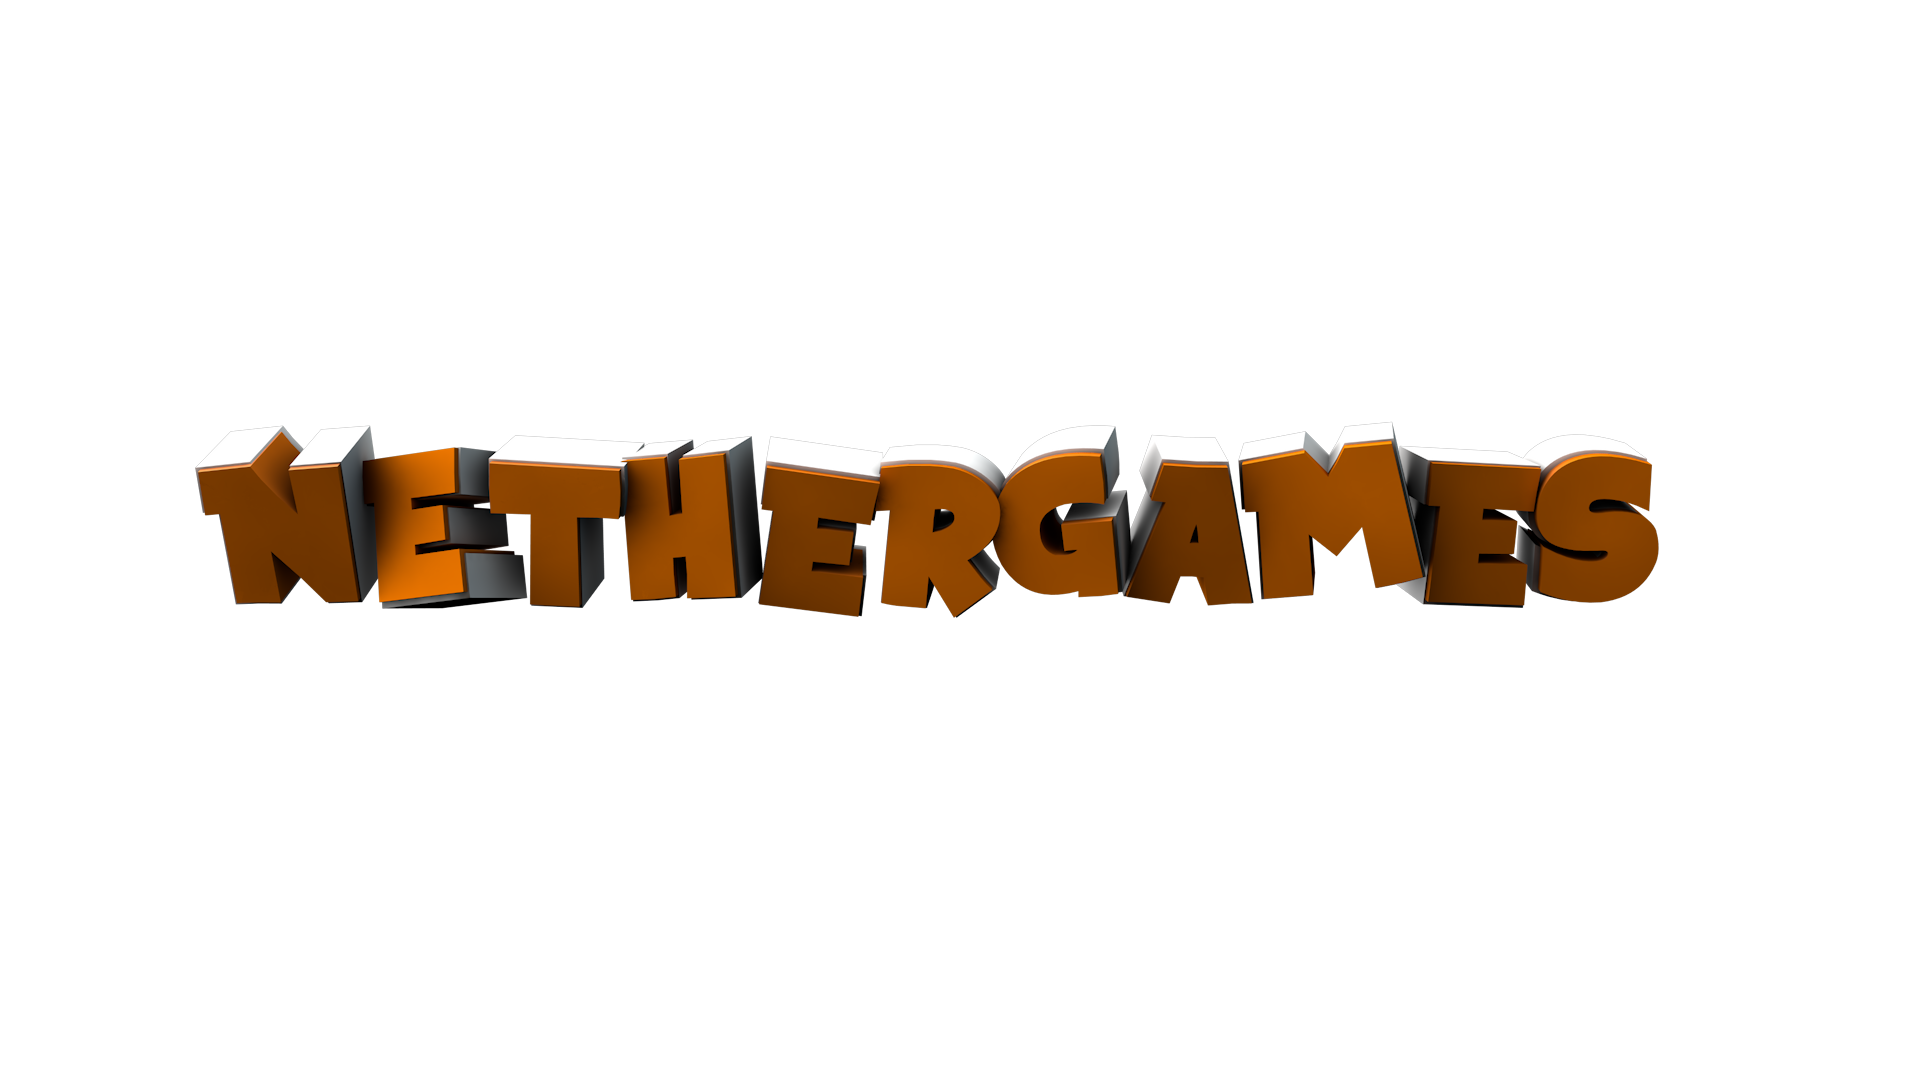 NetherGames Forums